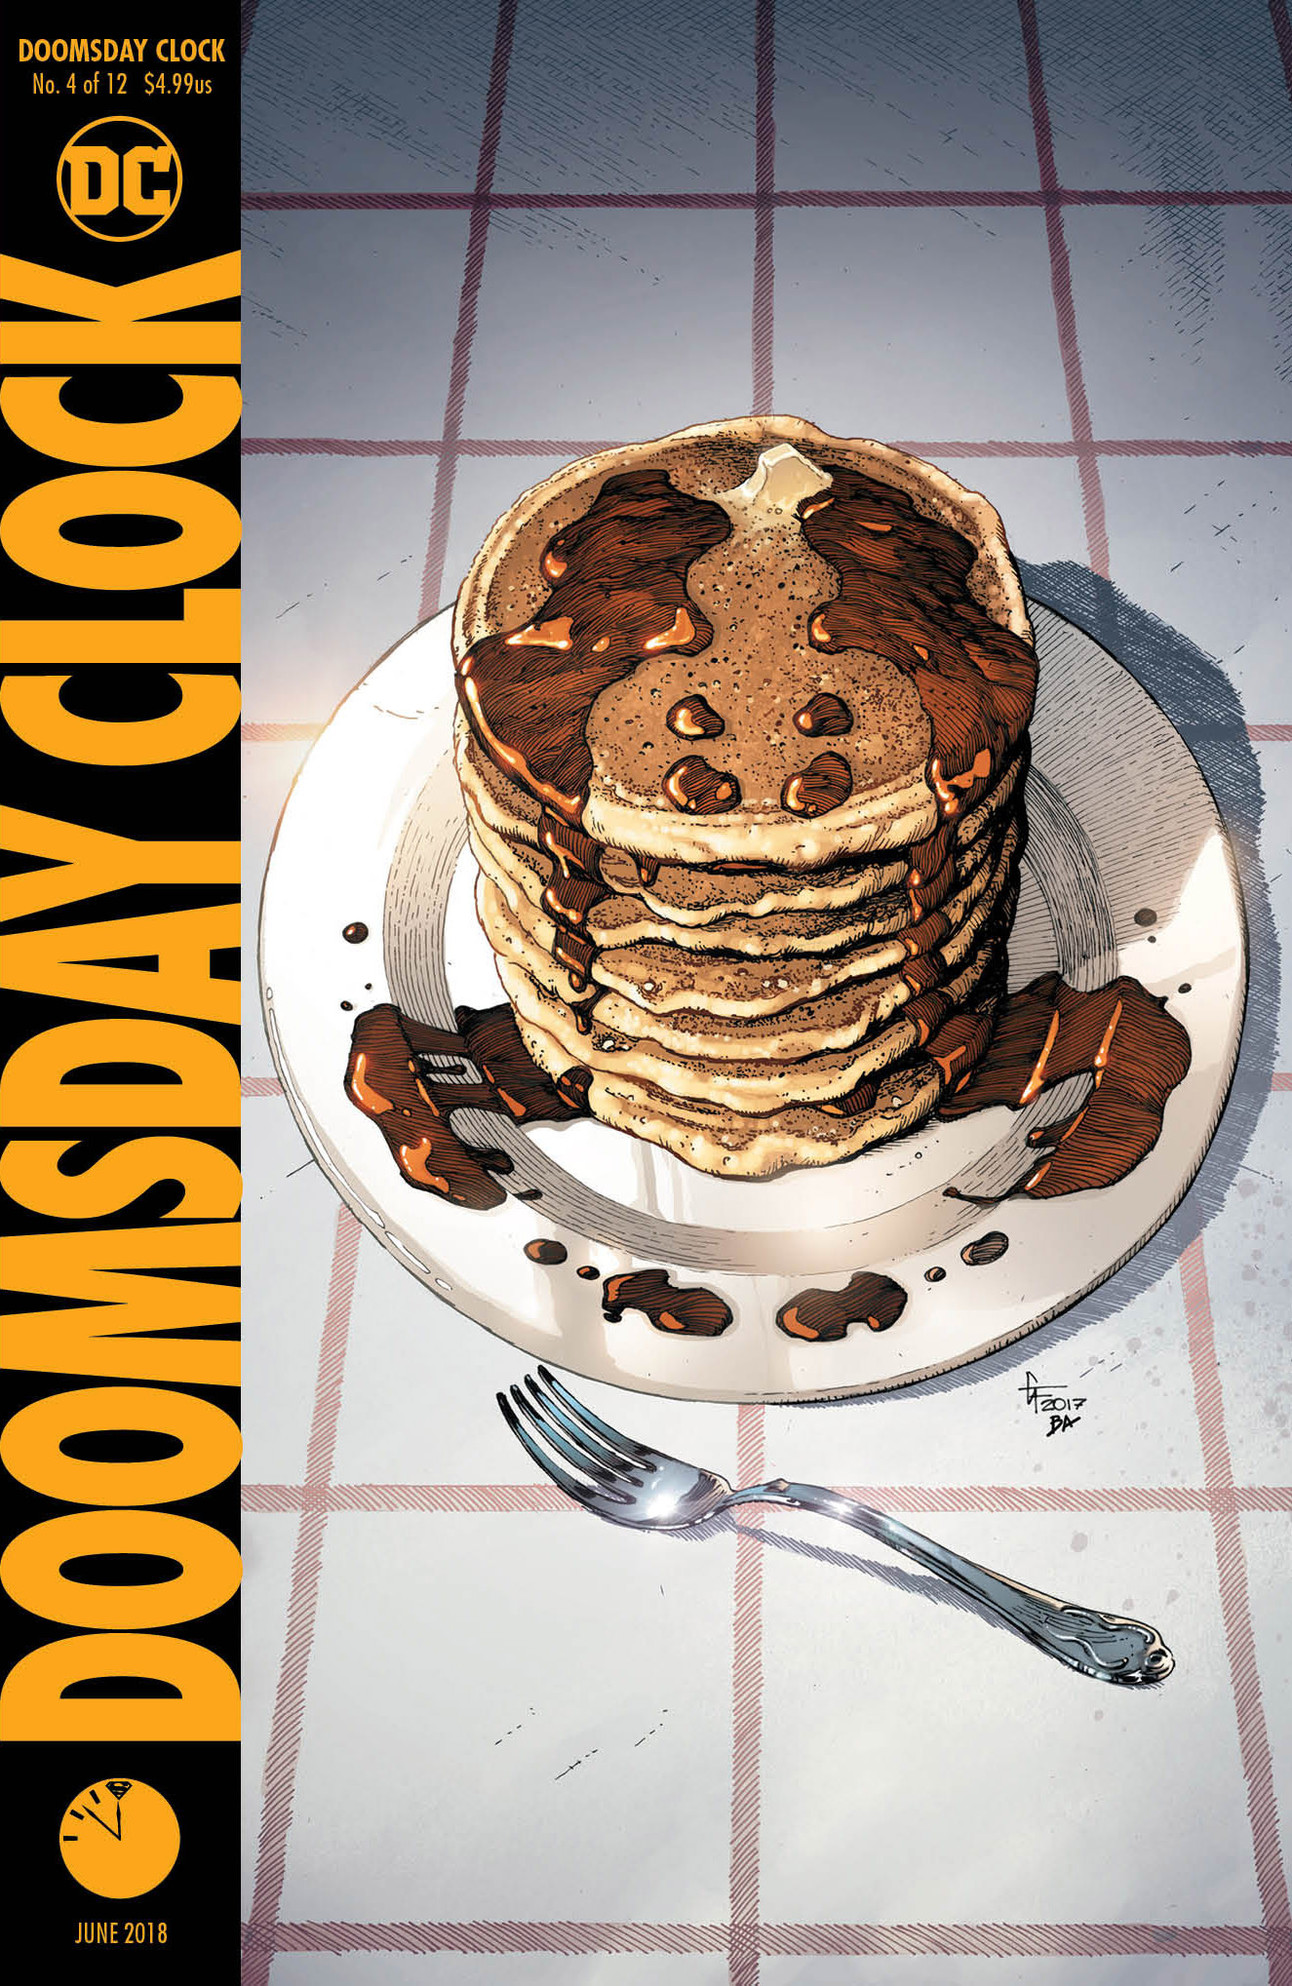 dc_doomsday_clock_4_cover.jpg